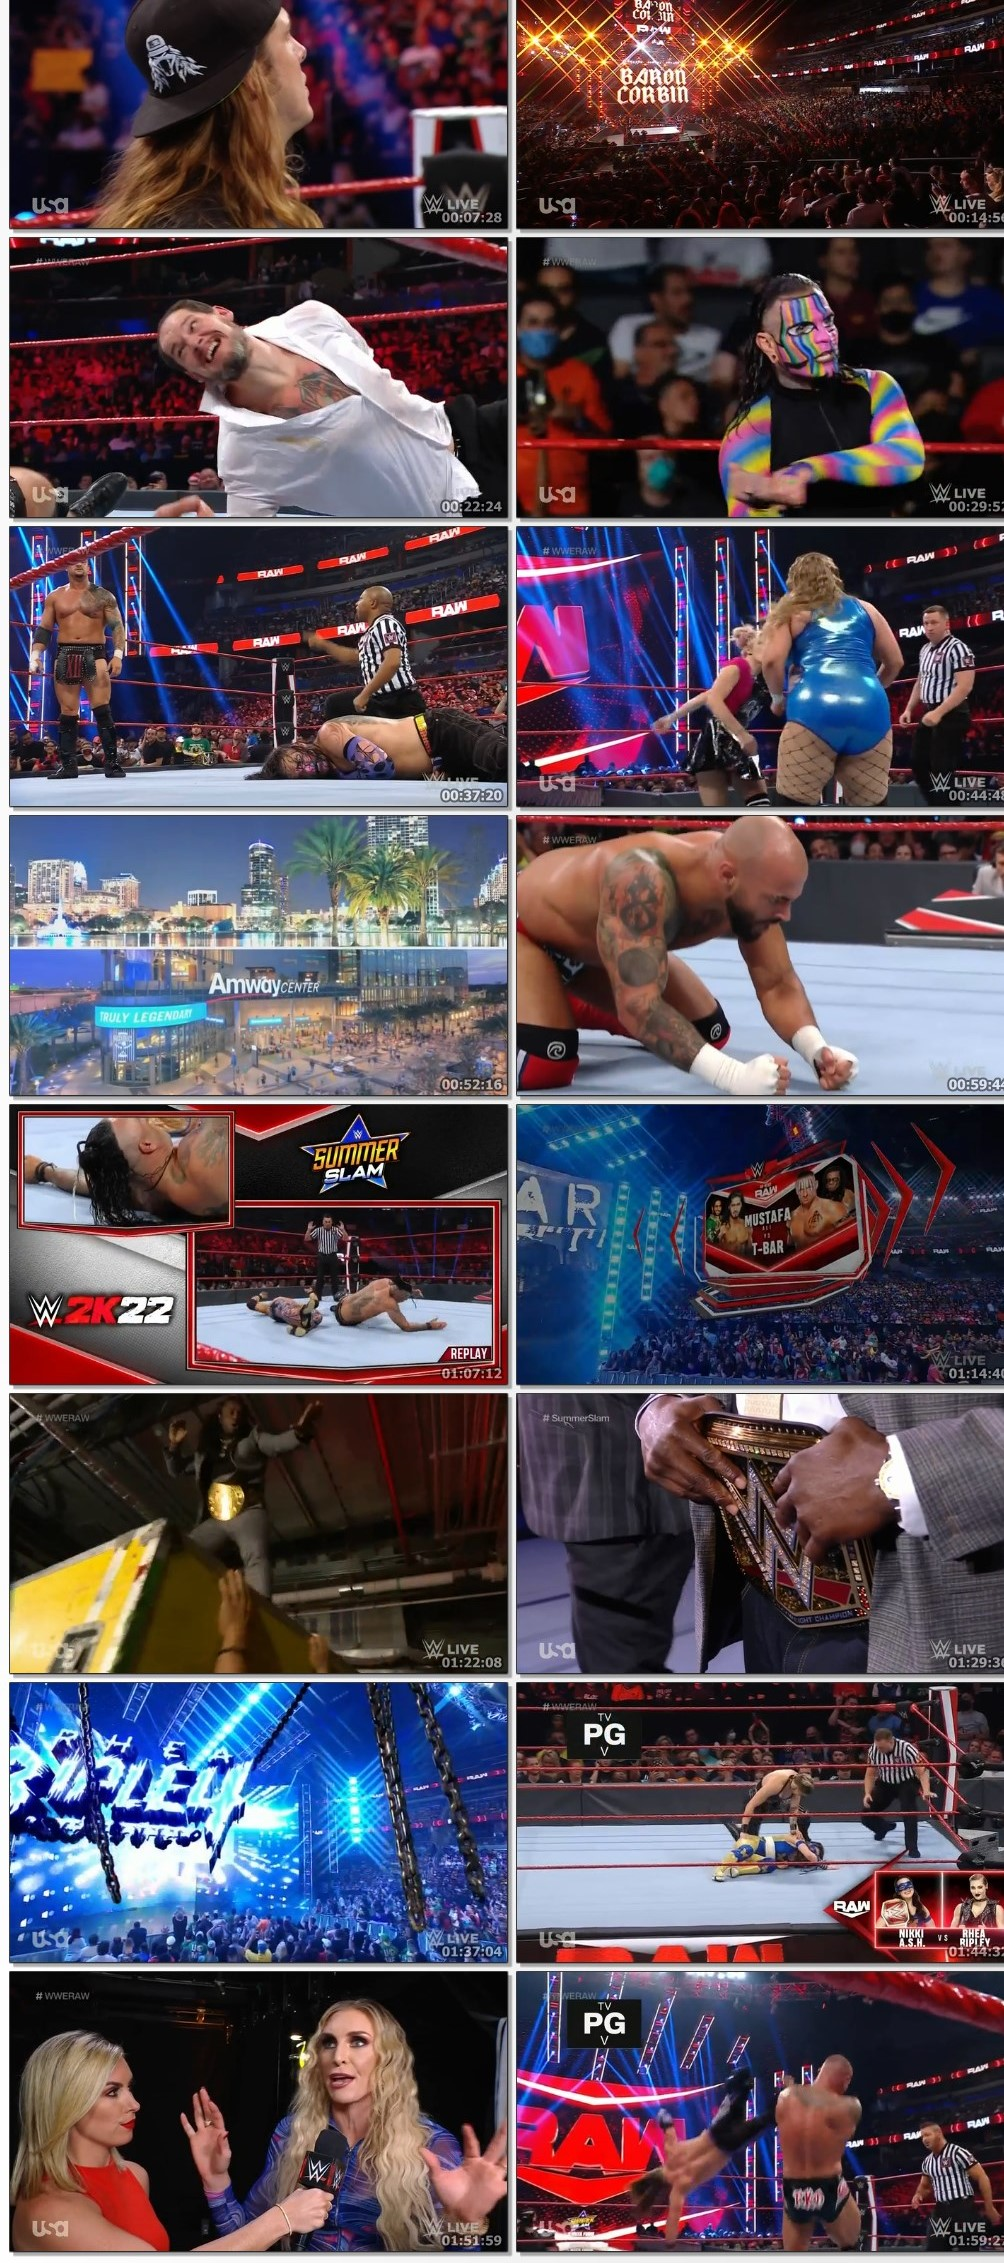 WWE-Monday-Night-Raw-9th-August-2021-English-720p-HDTV-1-4-GB-mkv-thumbs0caf29820633a85a